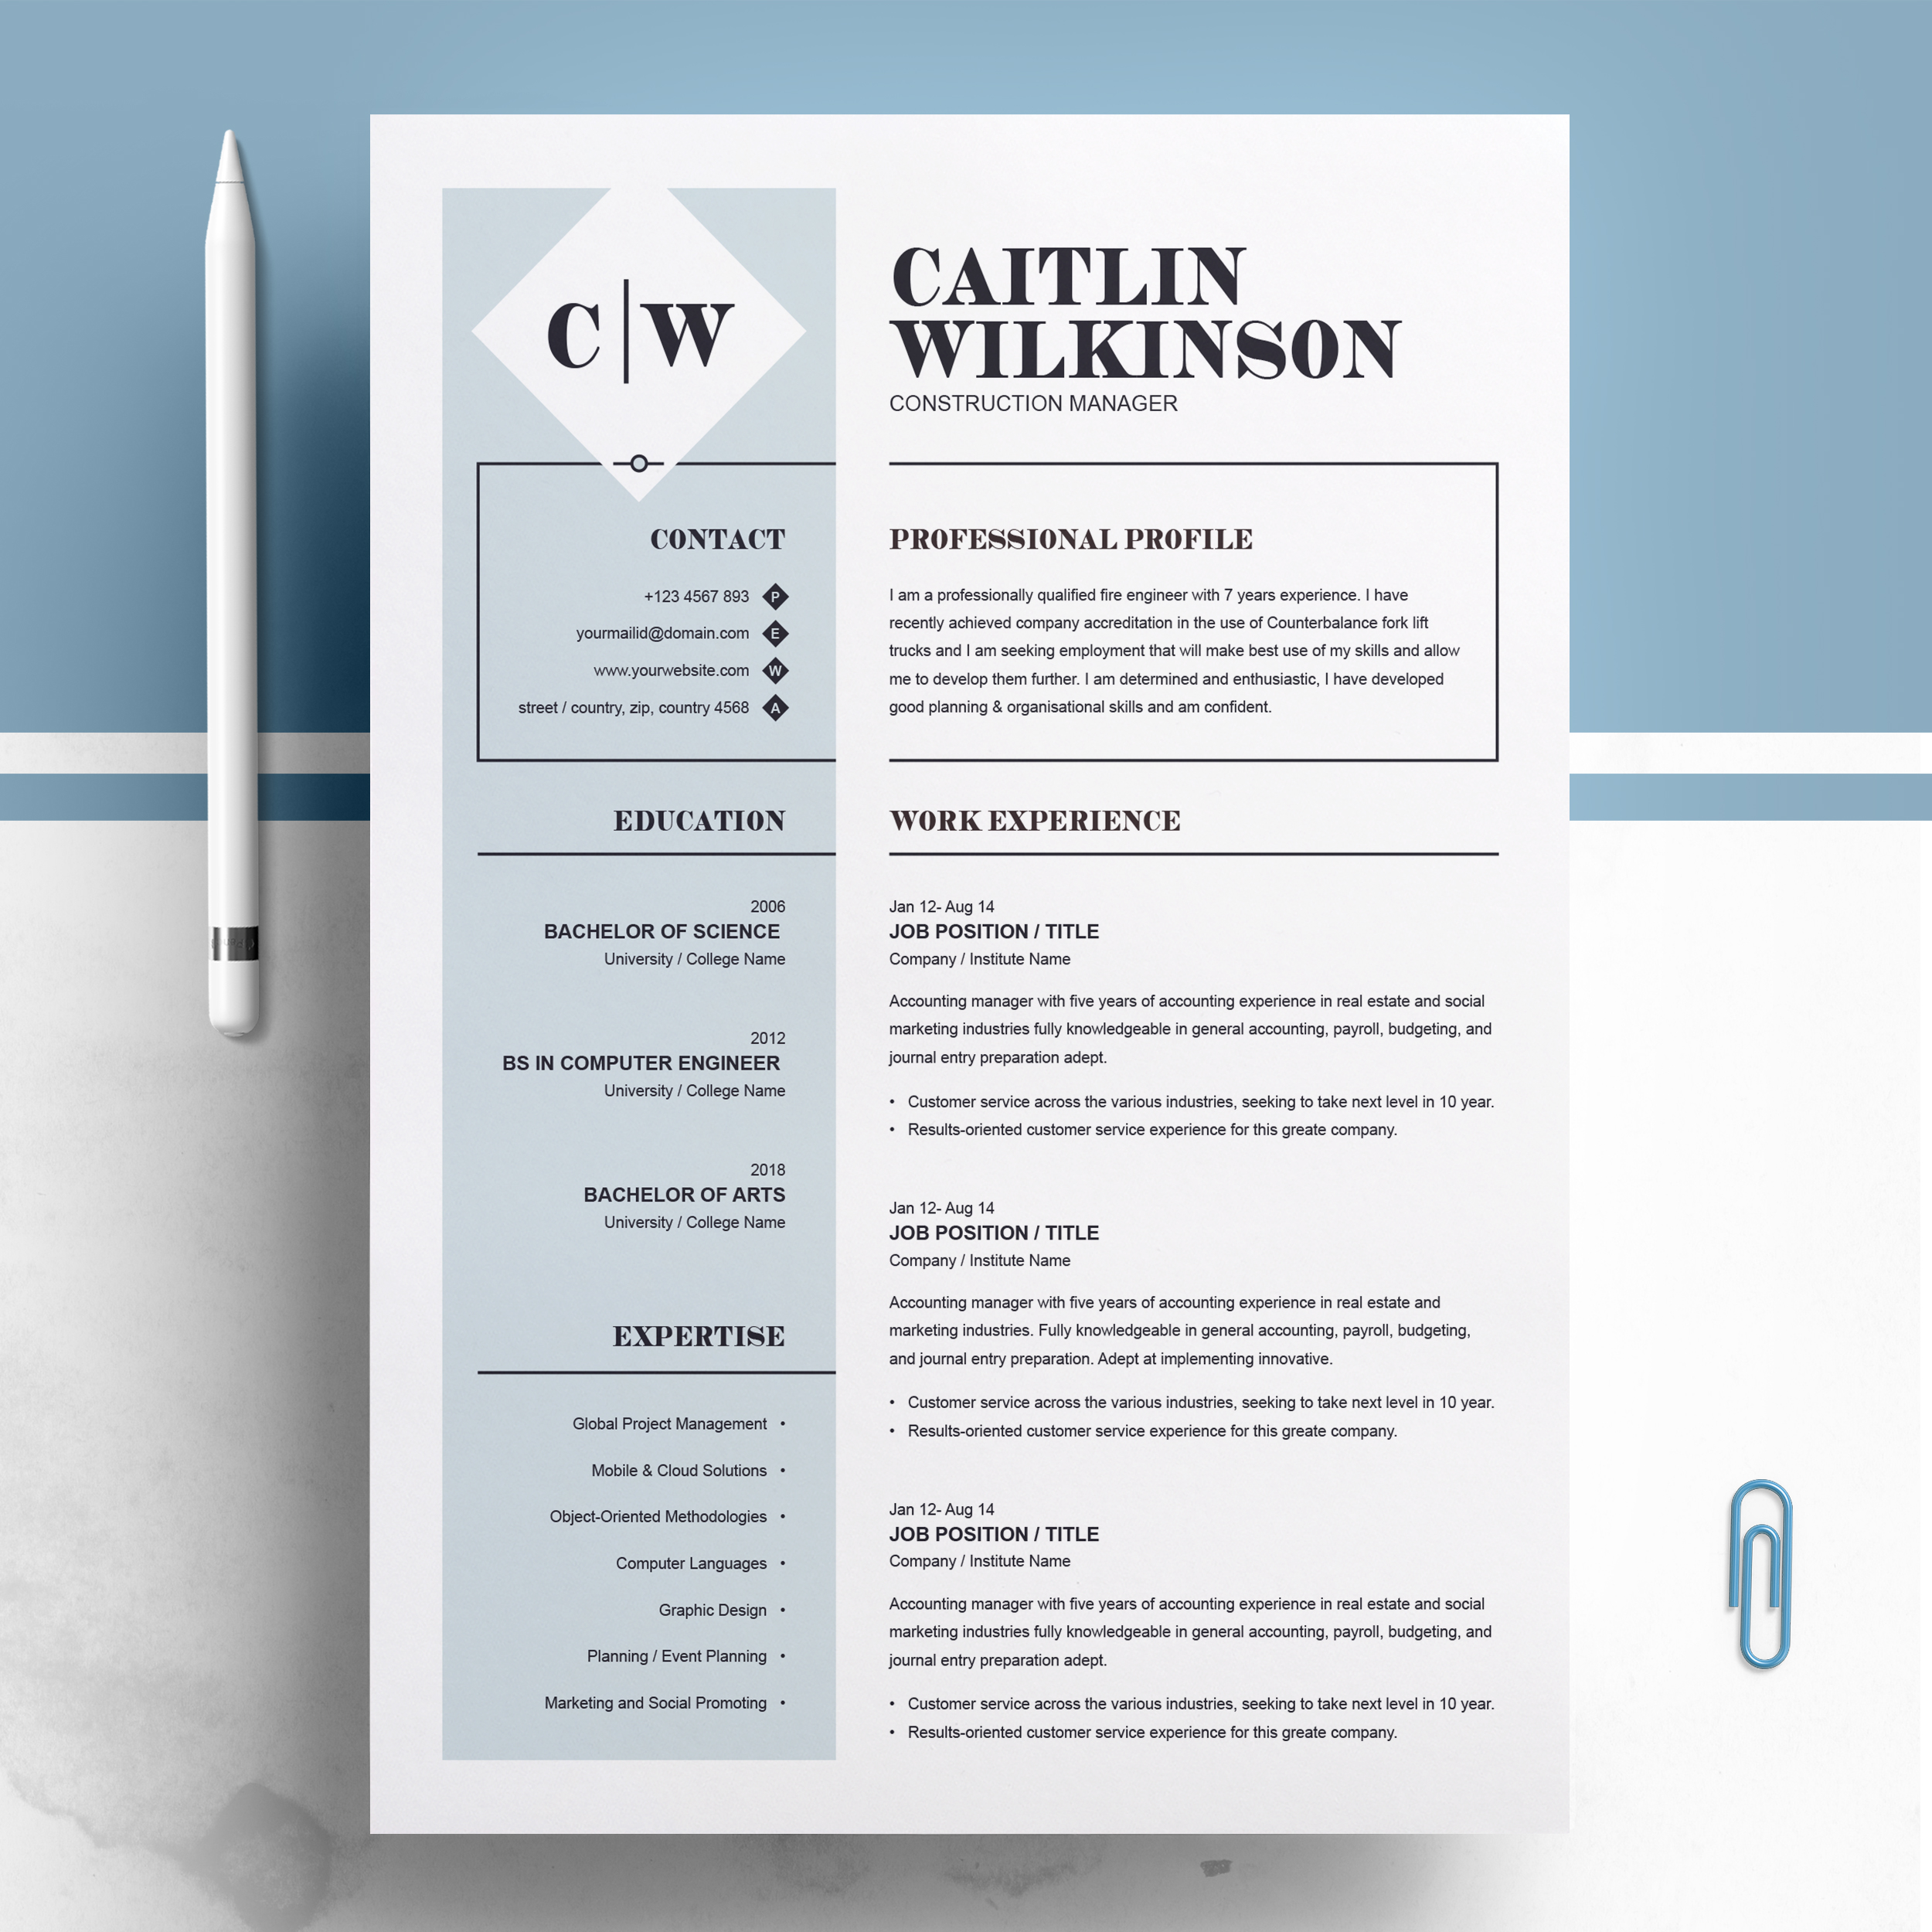 Teacher Welcome Letter Template Ocean on parent introduction, welcome back, parent welcome, end year, resume cover, gift donation, thank you, free new, appreciation thank you,